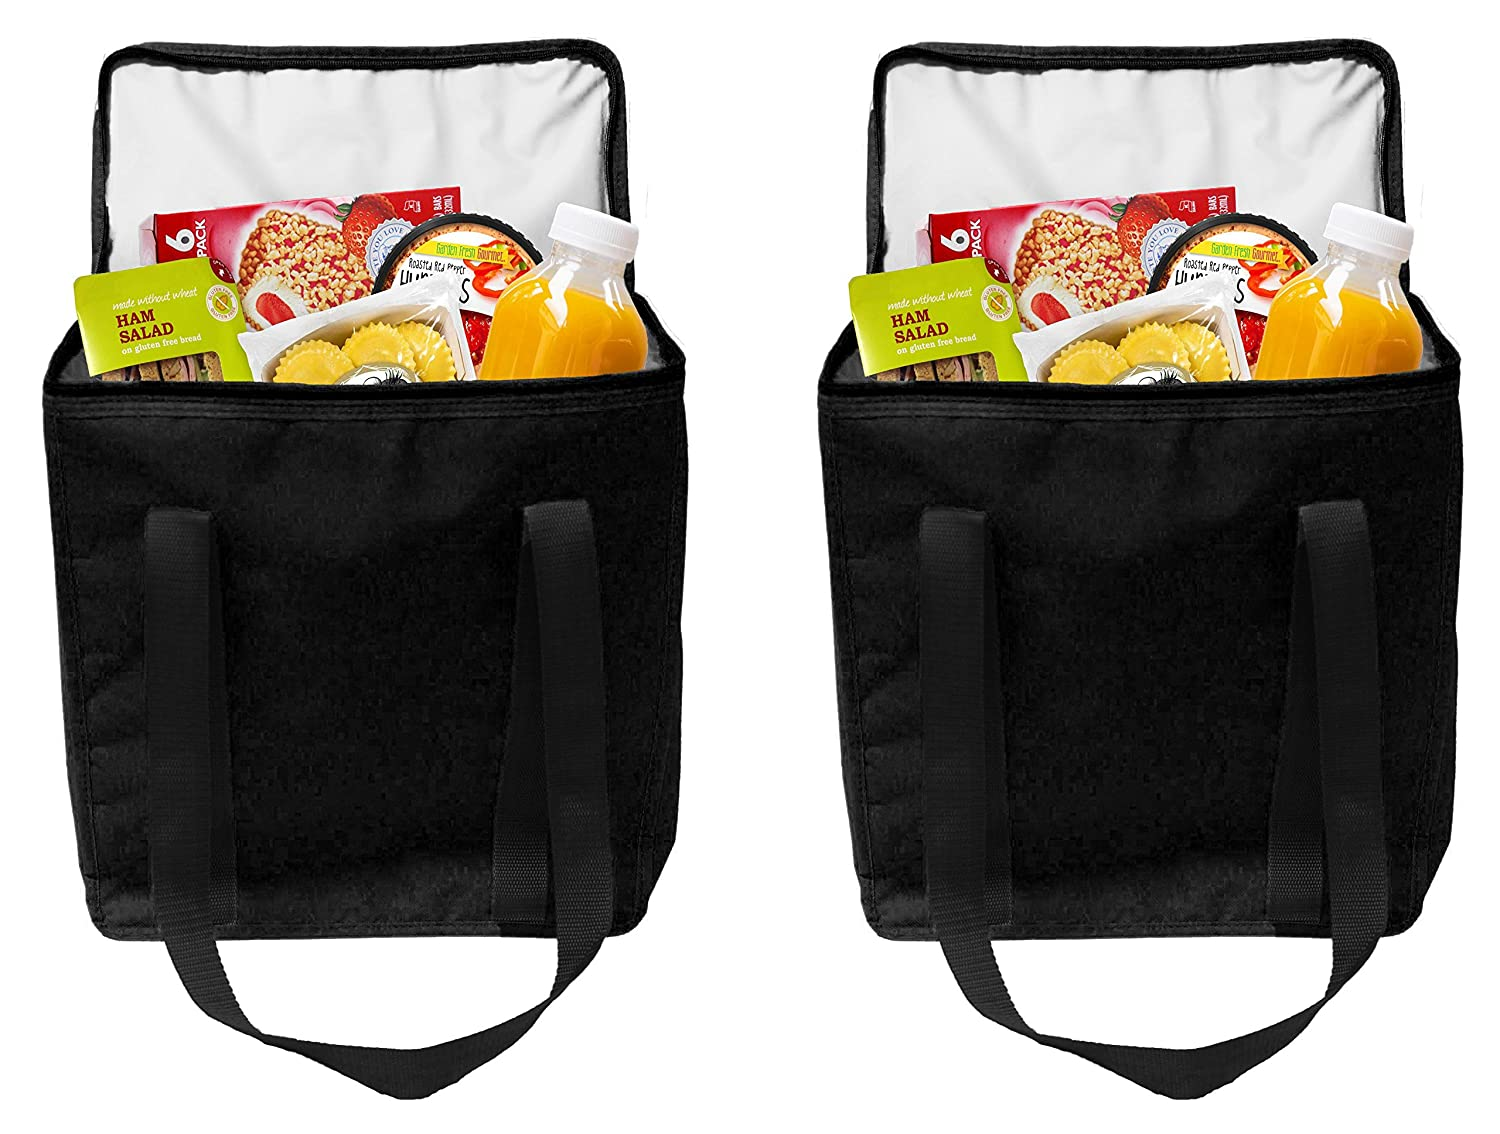 "Earthwise Reusable Insulated Grocery Bags Heavy Duty Nylon Thermal Cooler Tote WATERPROOF In all Black w/ZIPPER Closure KEEPS FOOD HOT OR COLD 12.75"" W x 14"" H x 7.75"" D (2 Pack) (Black)"